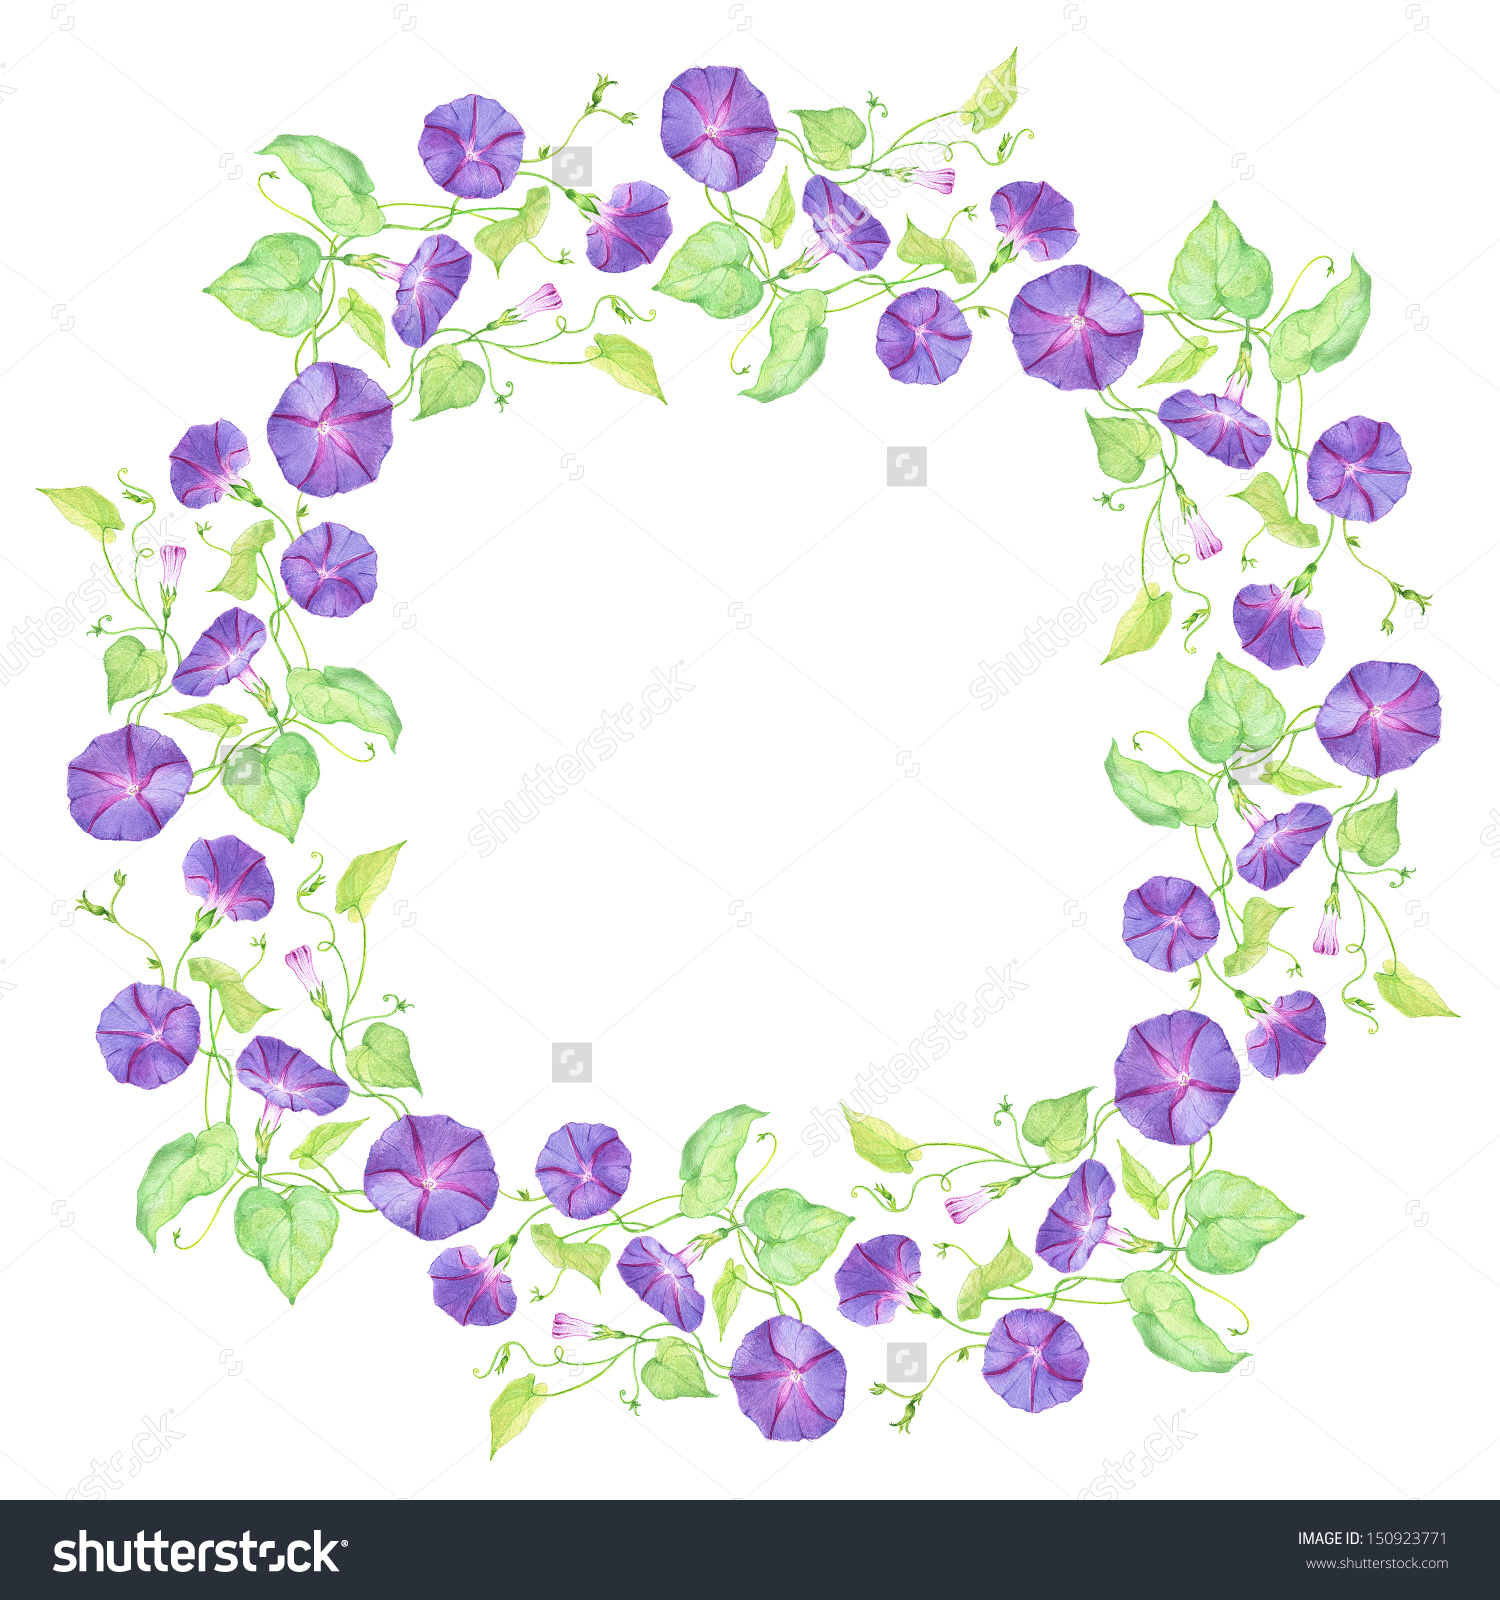 Painted Watercolor Wreath Of Violet Convolvulus Stock Photo.